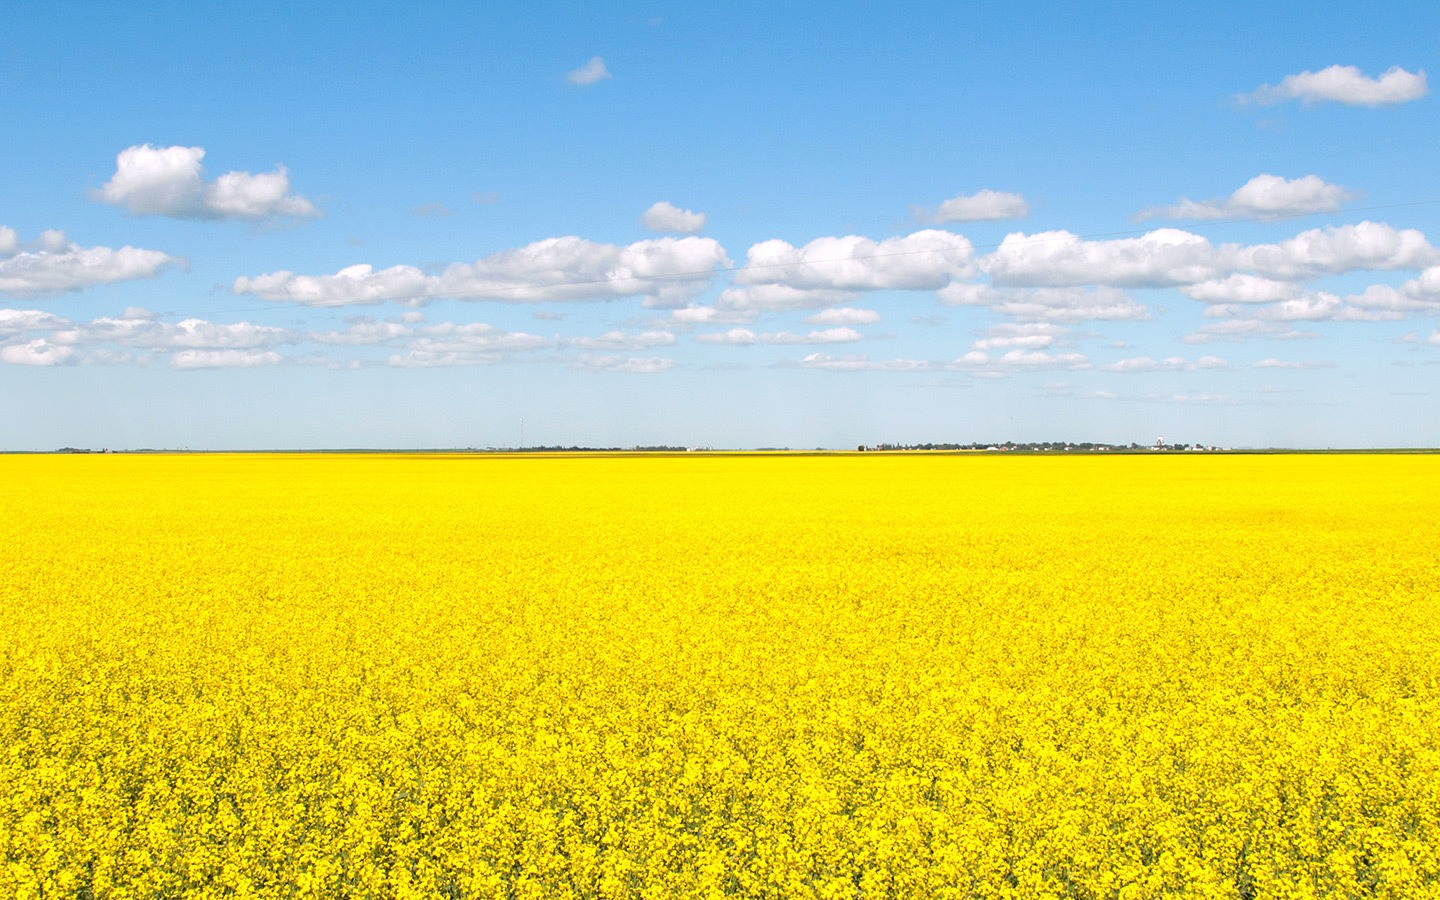 Canola fields on a road trip across the Canadian Prairies